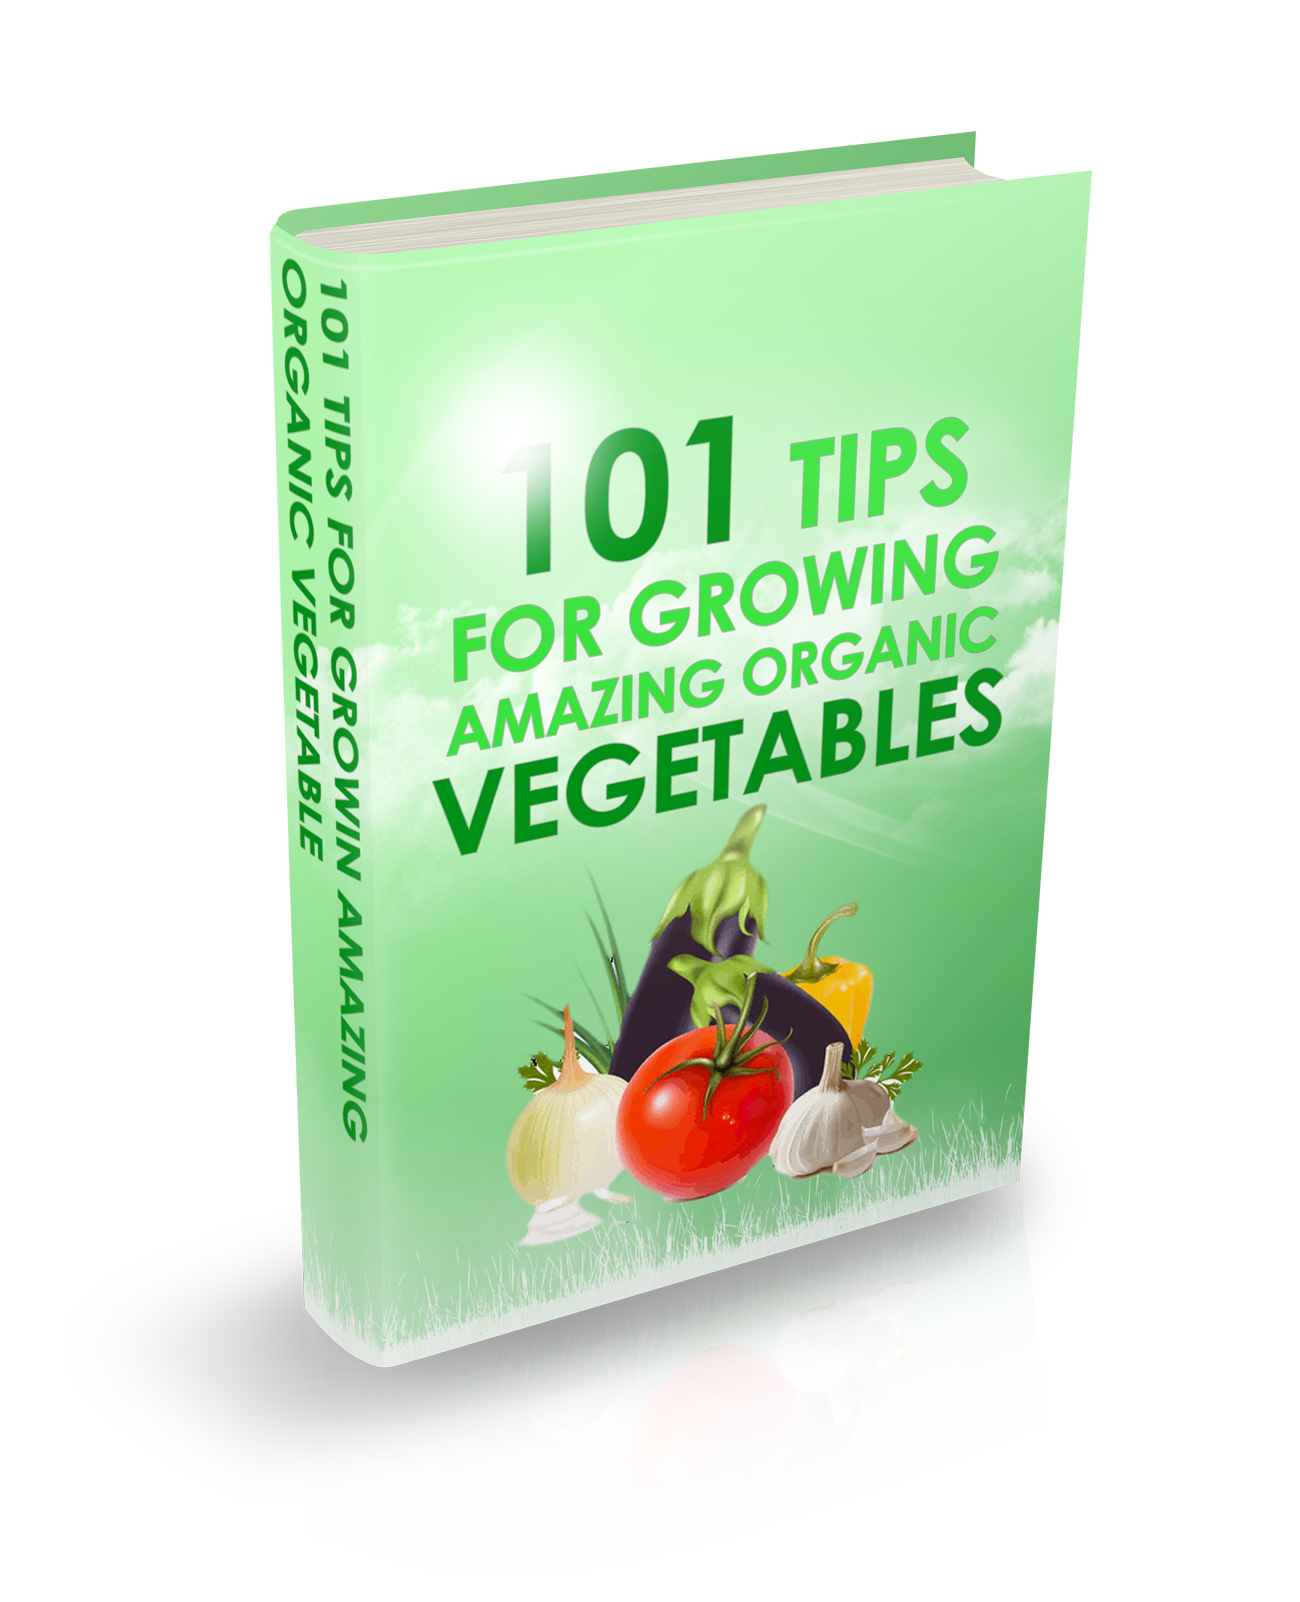 101 Tips for Growing Amazing Organic Vegetables